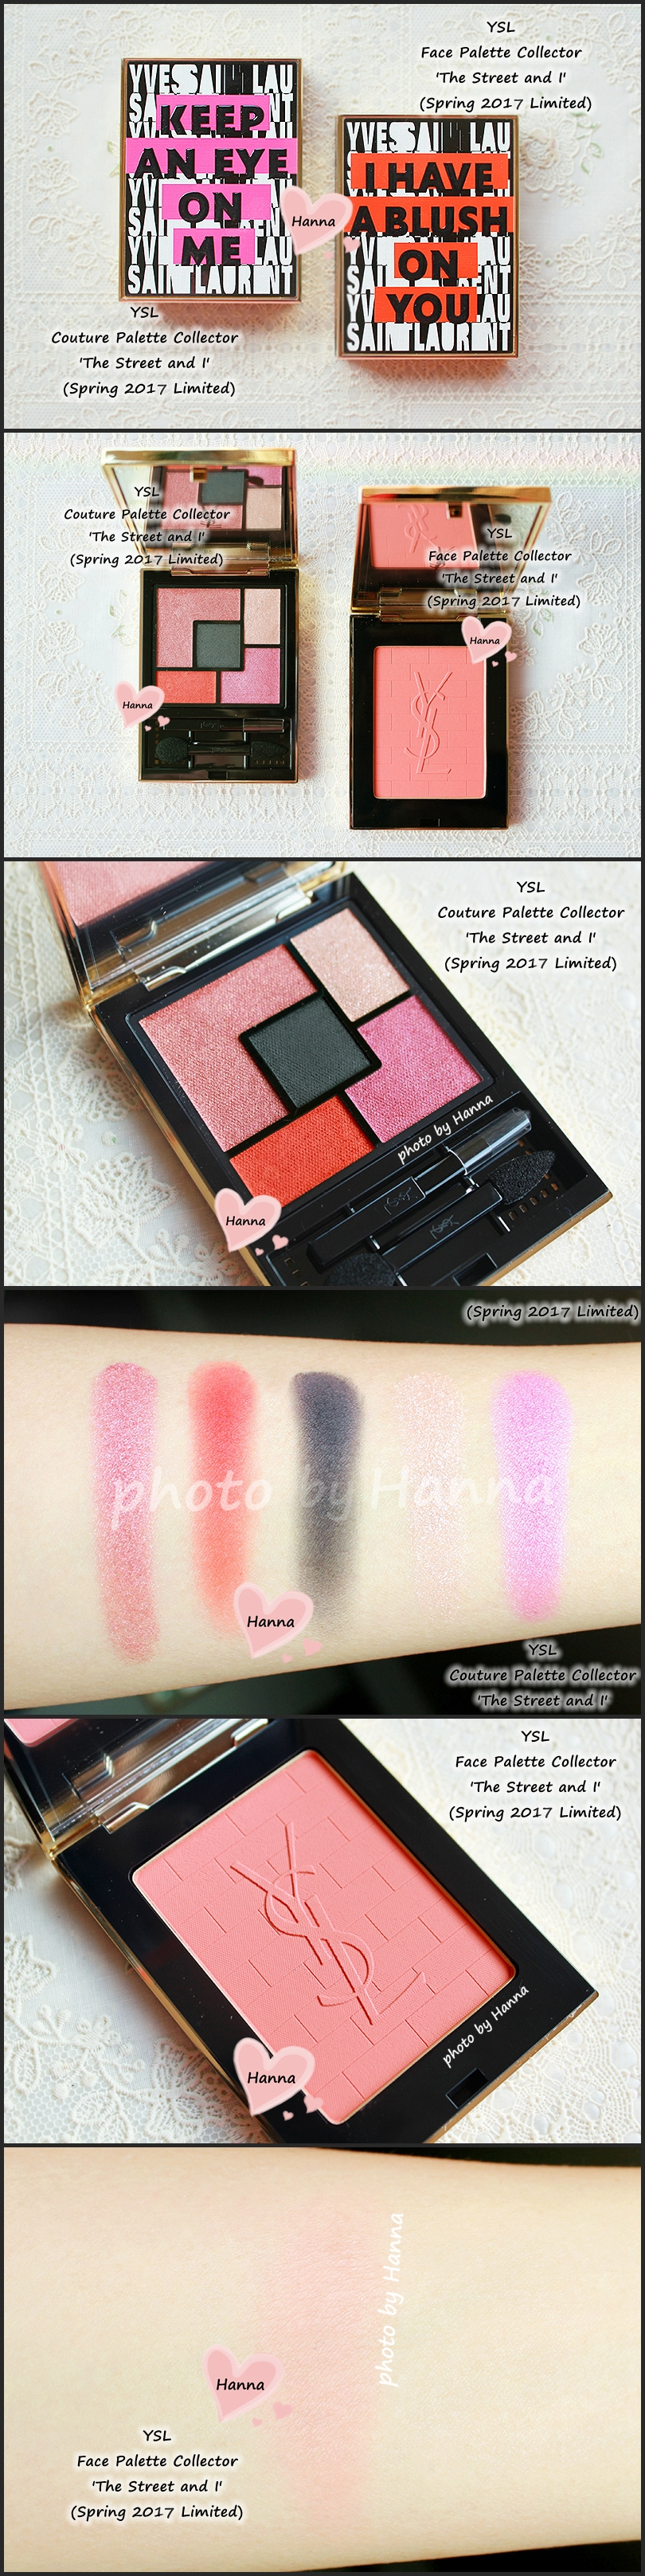 Ysl the street and i eyeshadow palette and face palette from the ysl the street and i eyeshadow palette and face palette from the street art ccuart Gallery